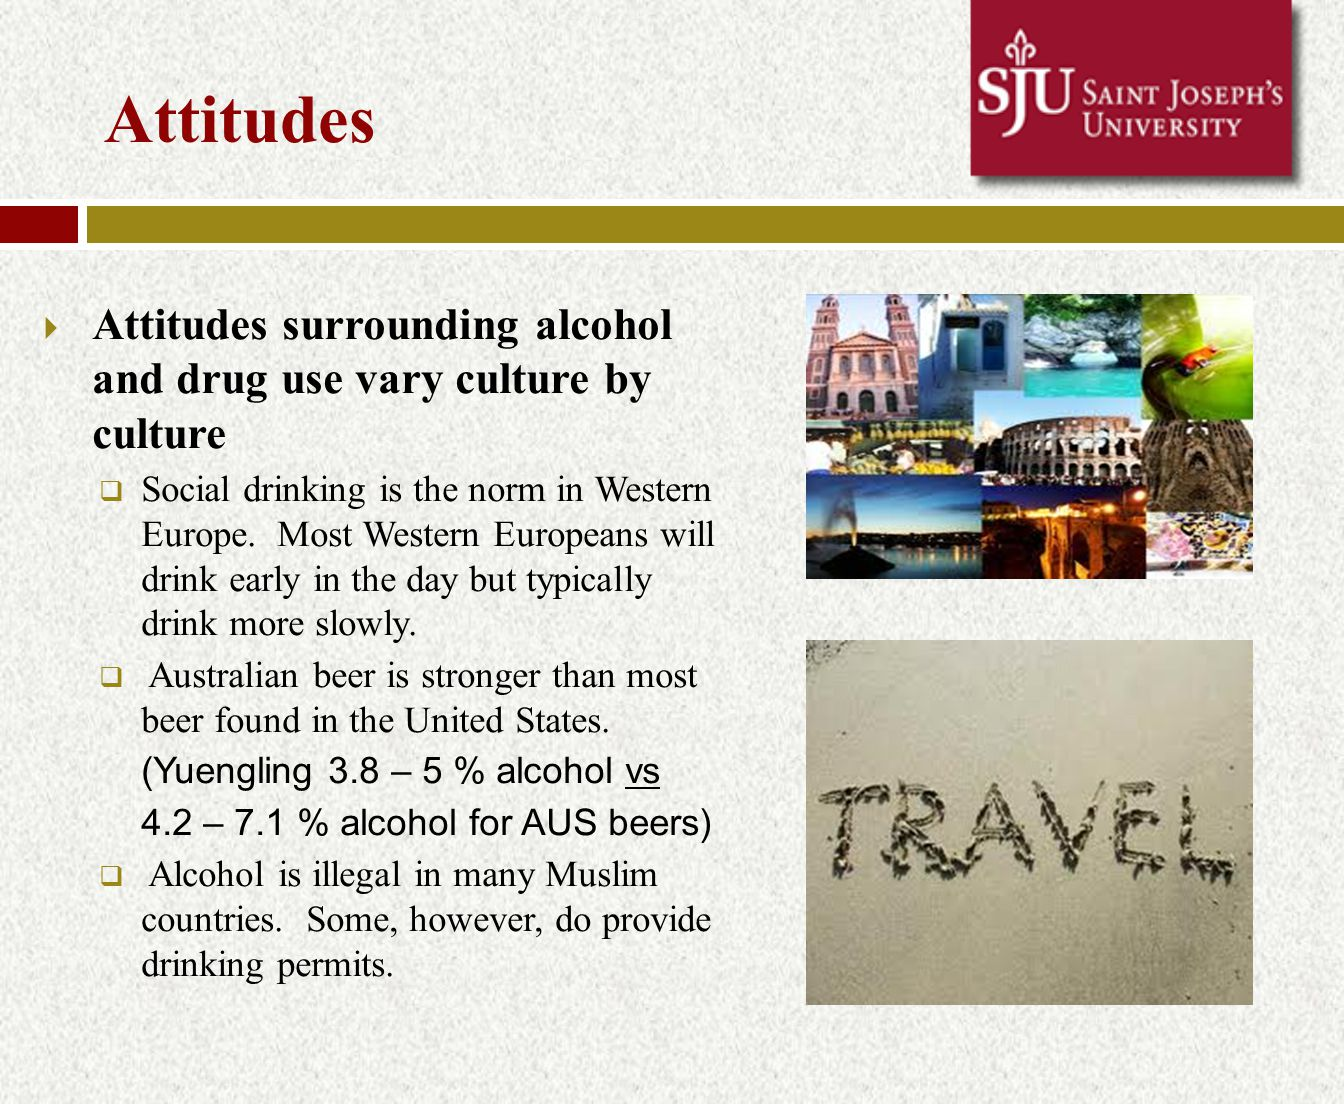 Customs  Even if it is legal for you to drink in the country where you are studying, and drinking may be an accepted part of the culture, there are still many customs regarding alcohol use that may be different than those in the U.S.